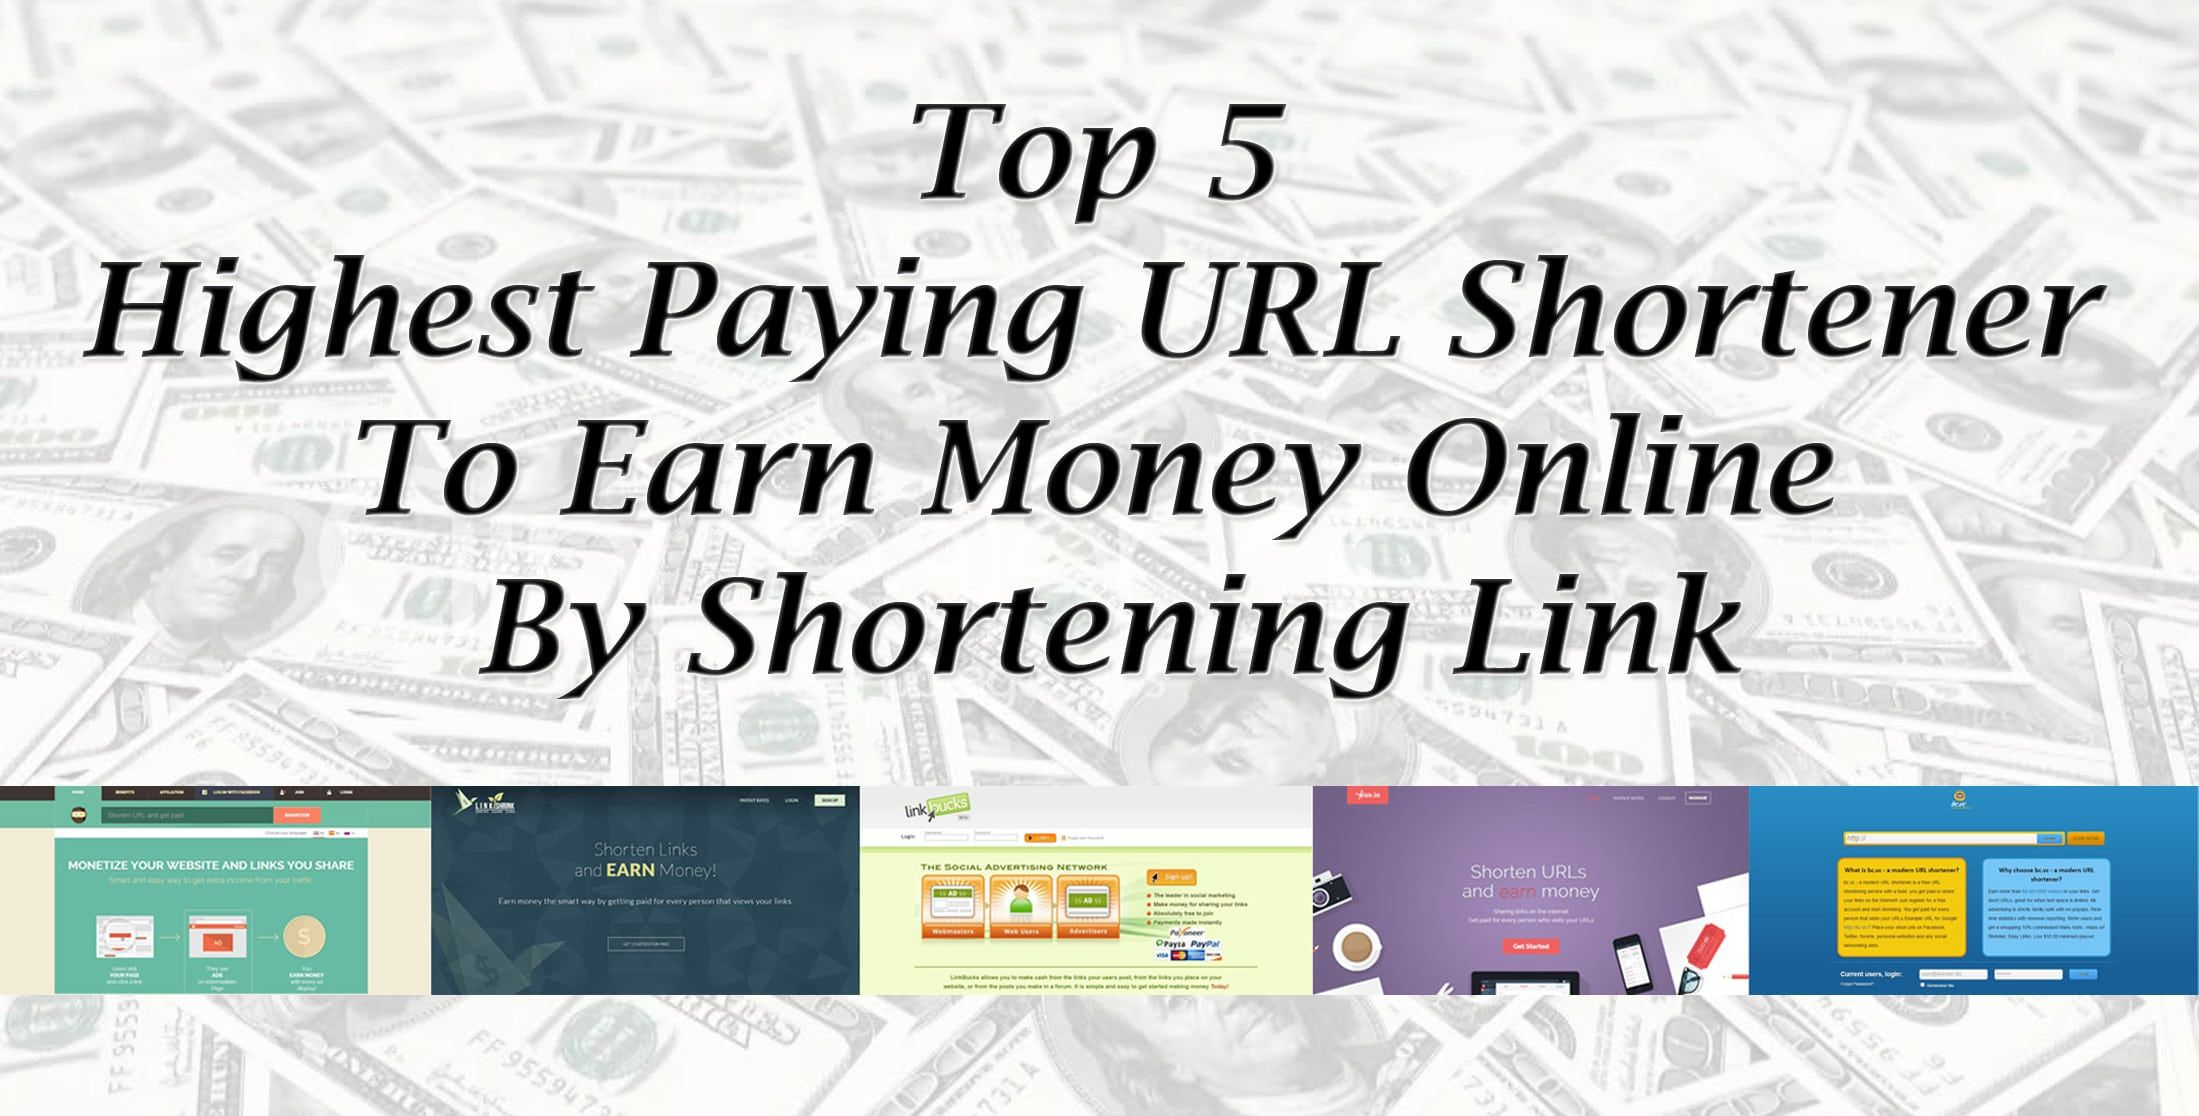 All given information about top 10 money earning apps for